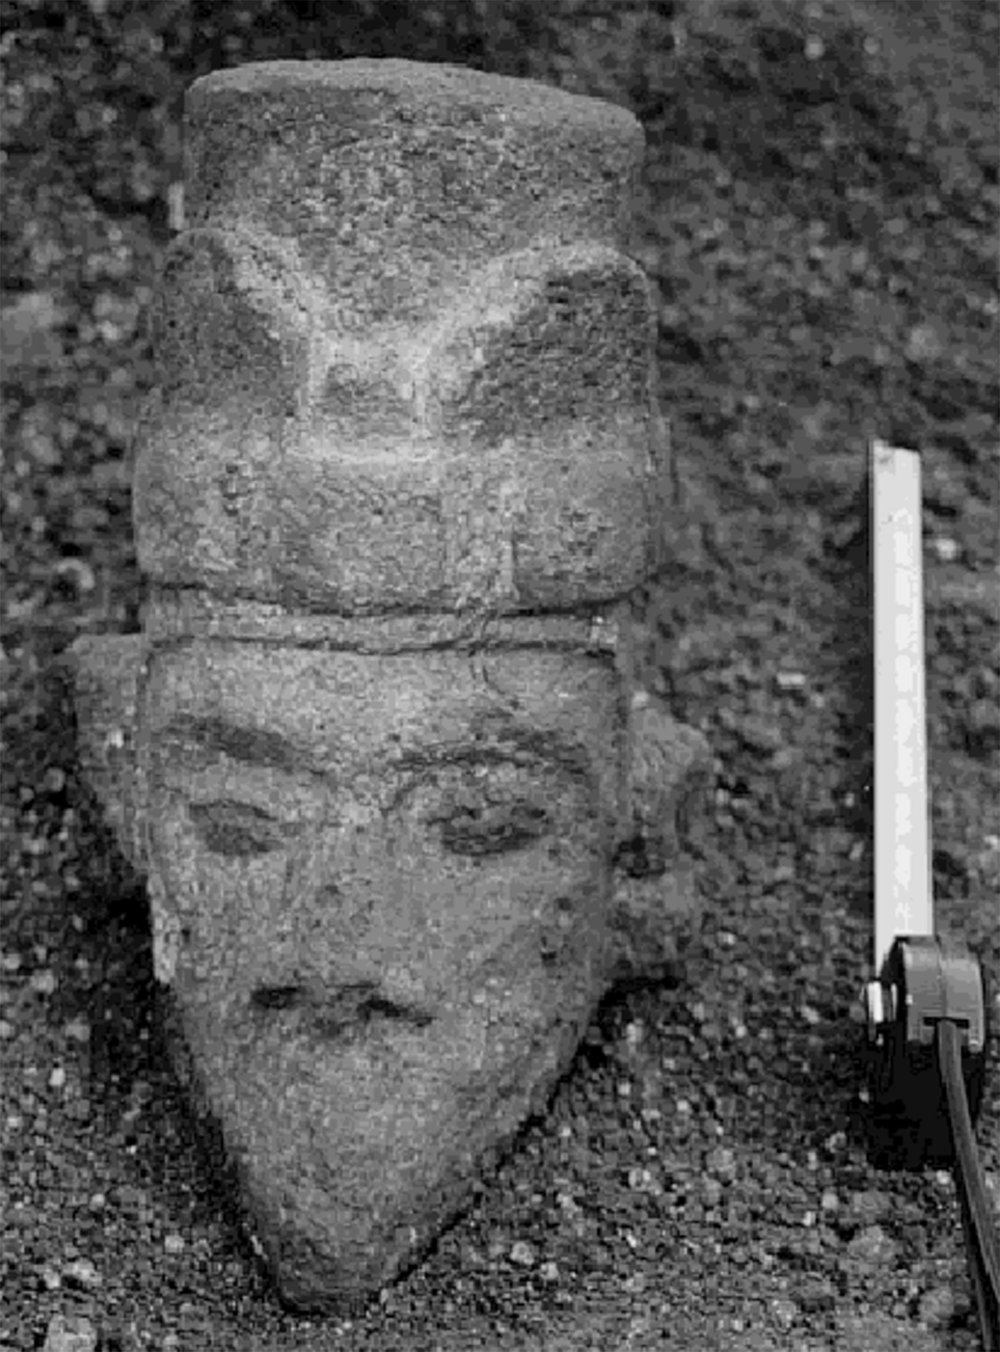 Limestone head suggests links with Central Mexico. Source:  researchgate.net .